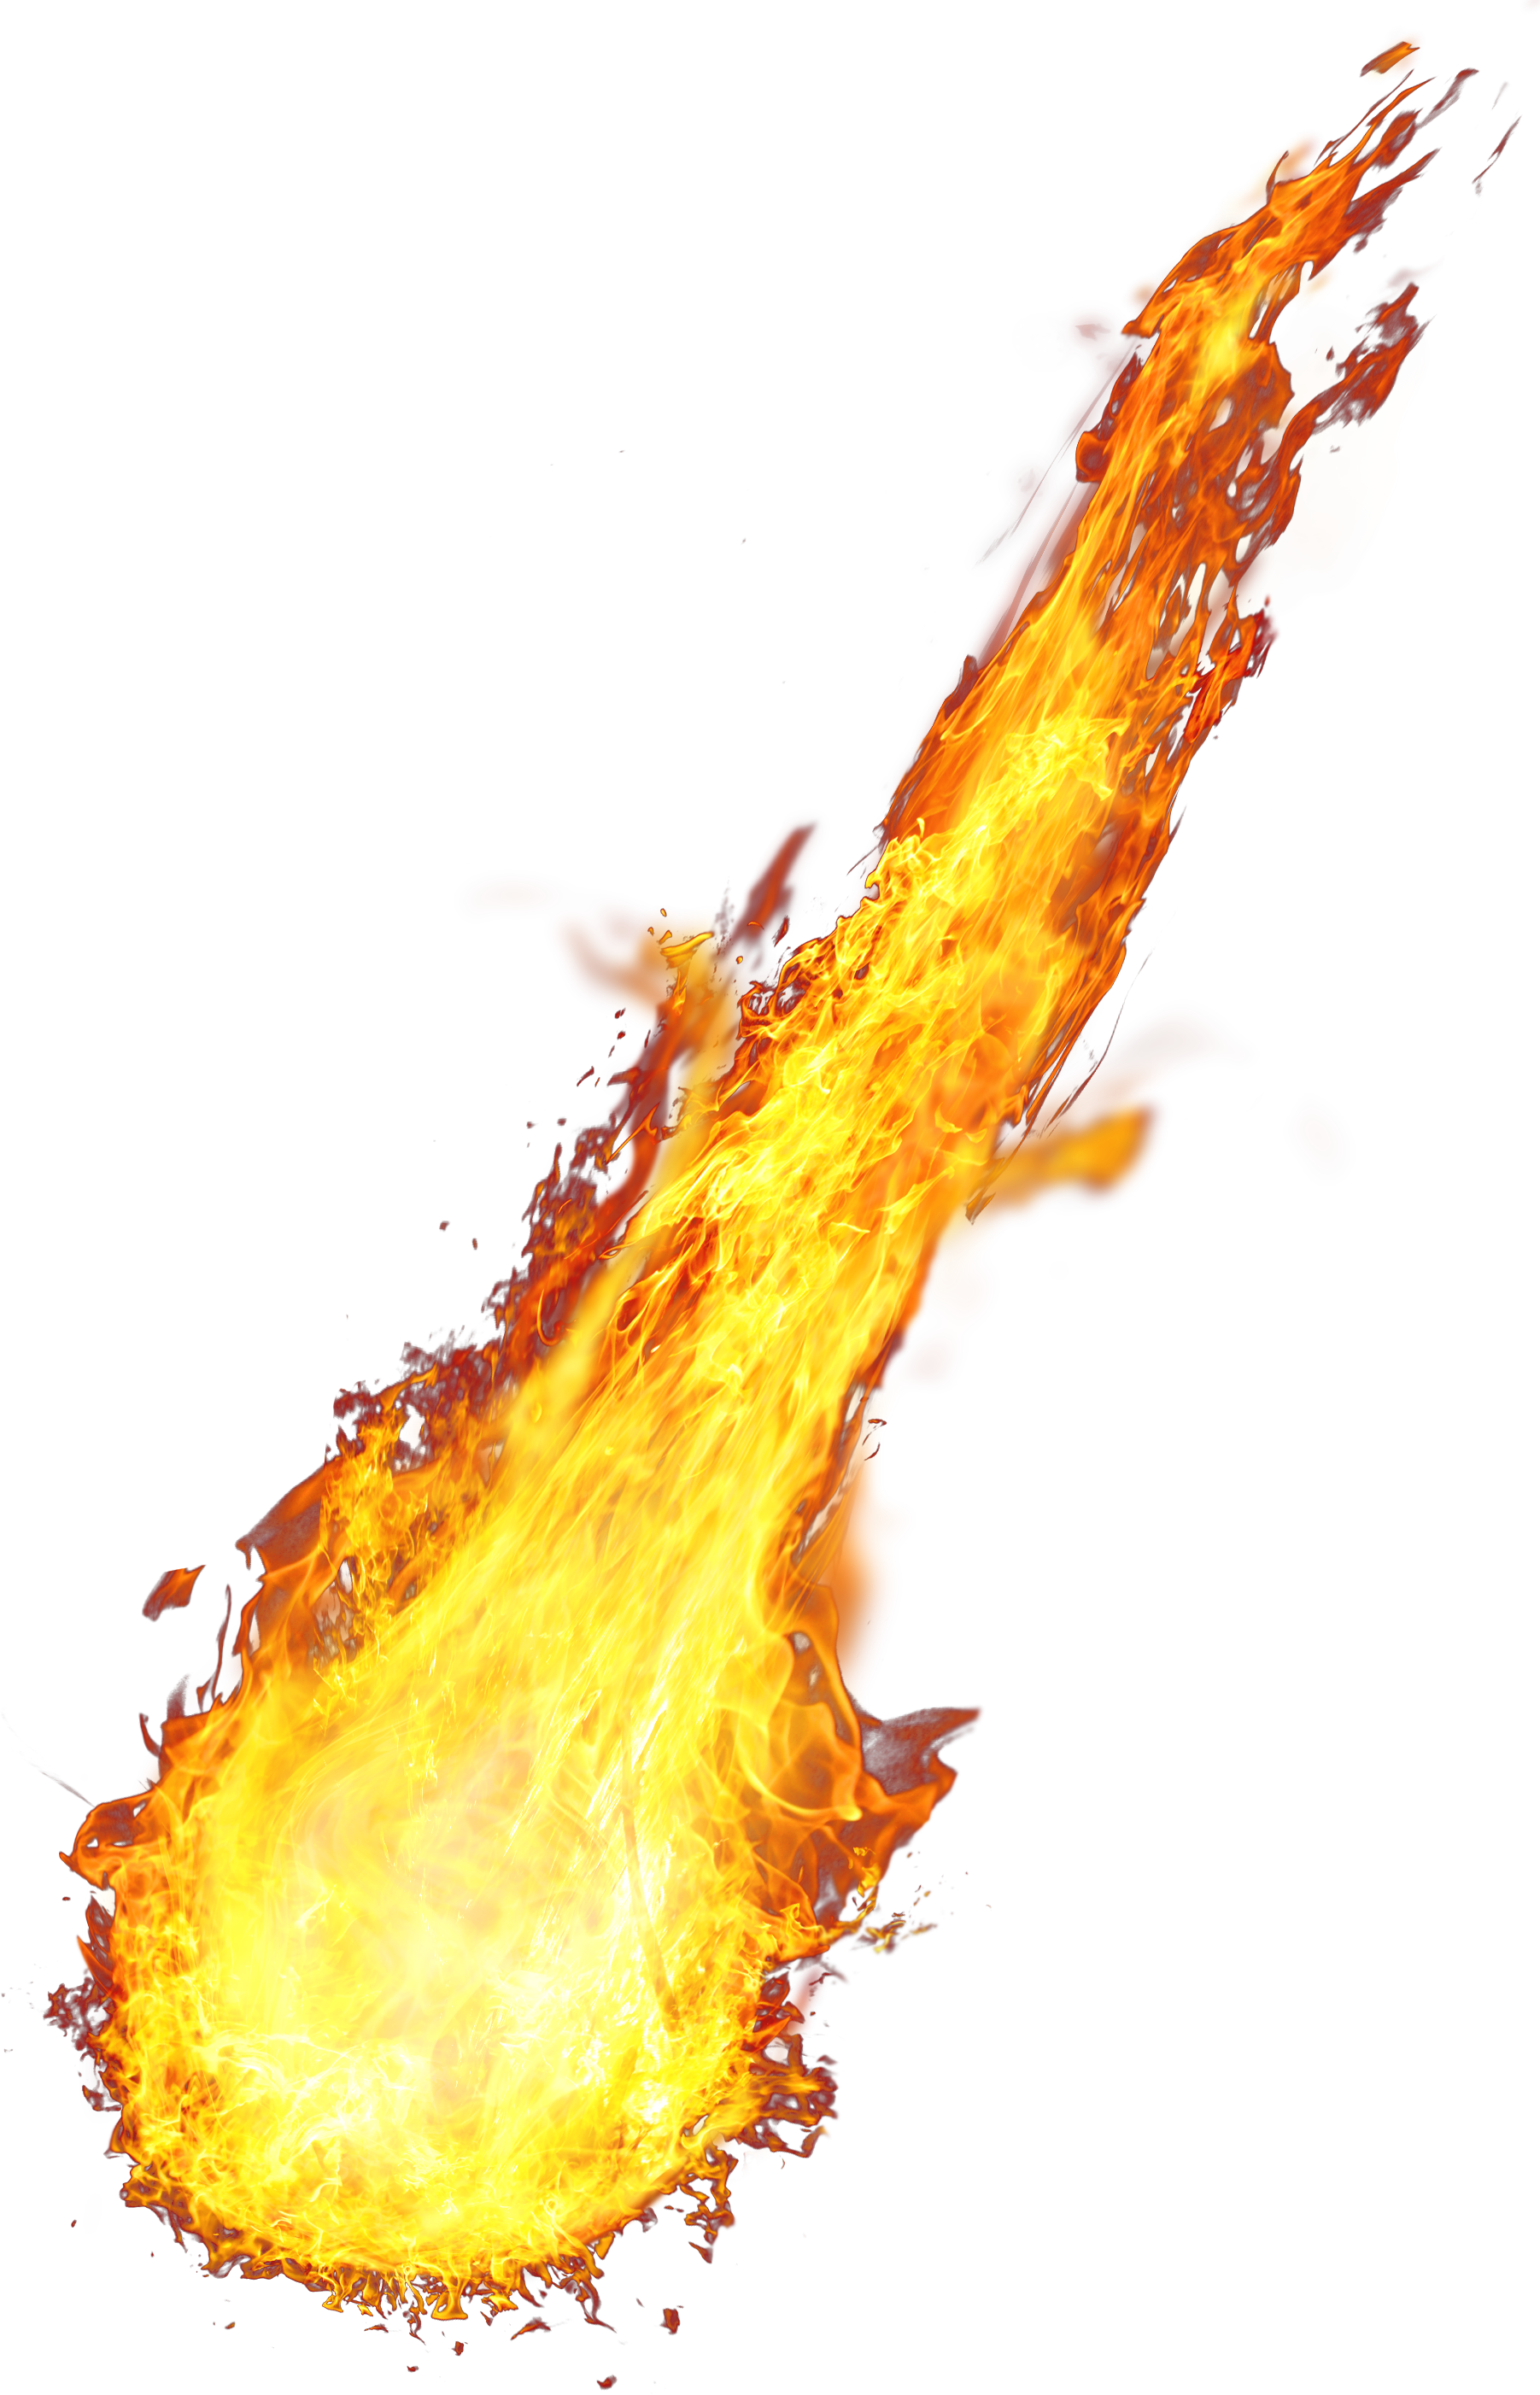 Fire PNG Image   Fire PNG Image image #670